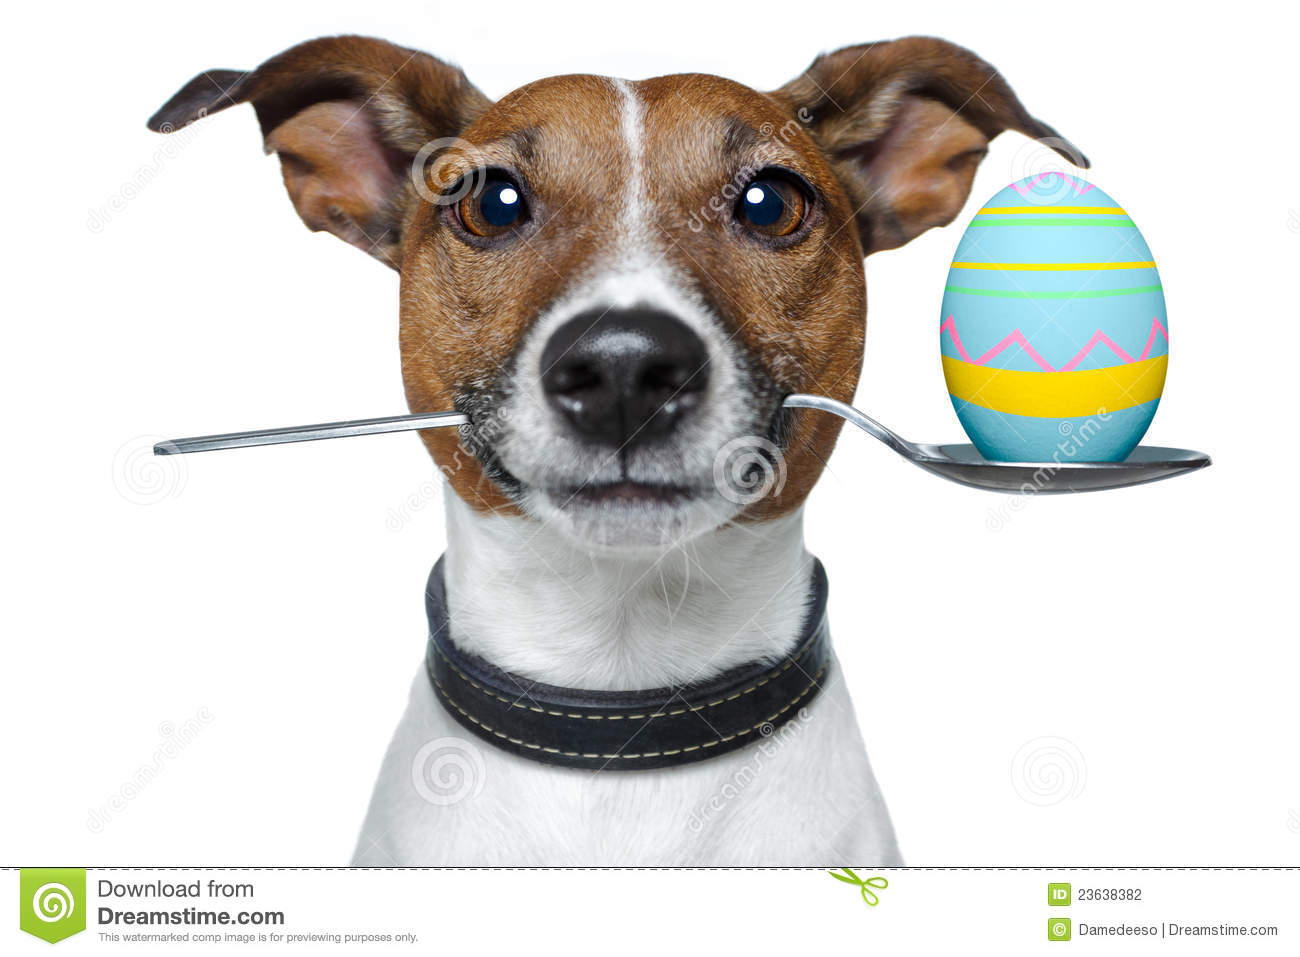 Dog with spoon and easter egg